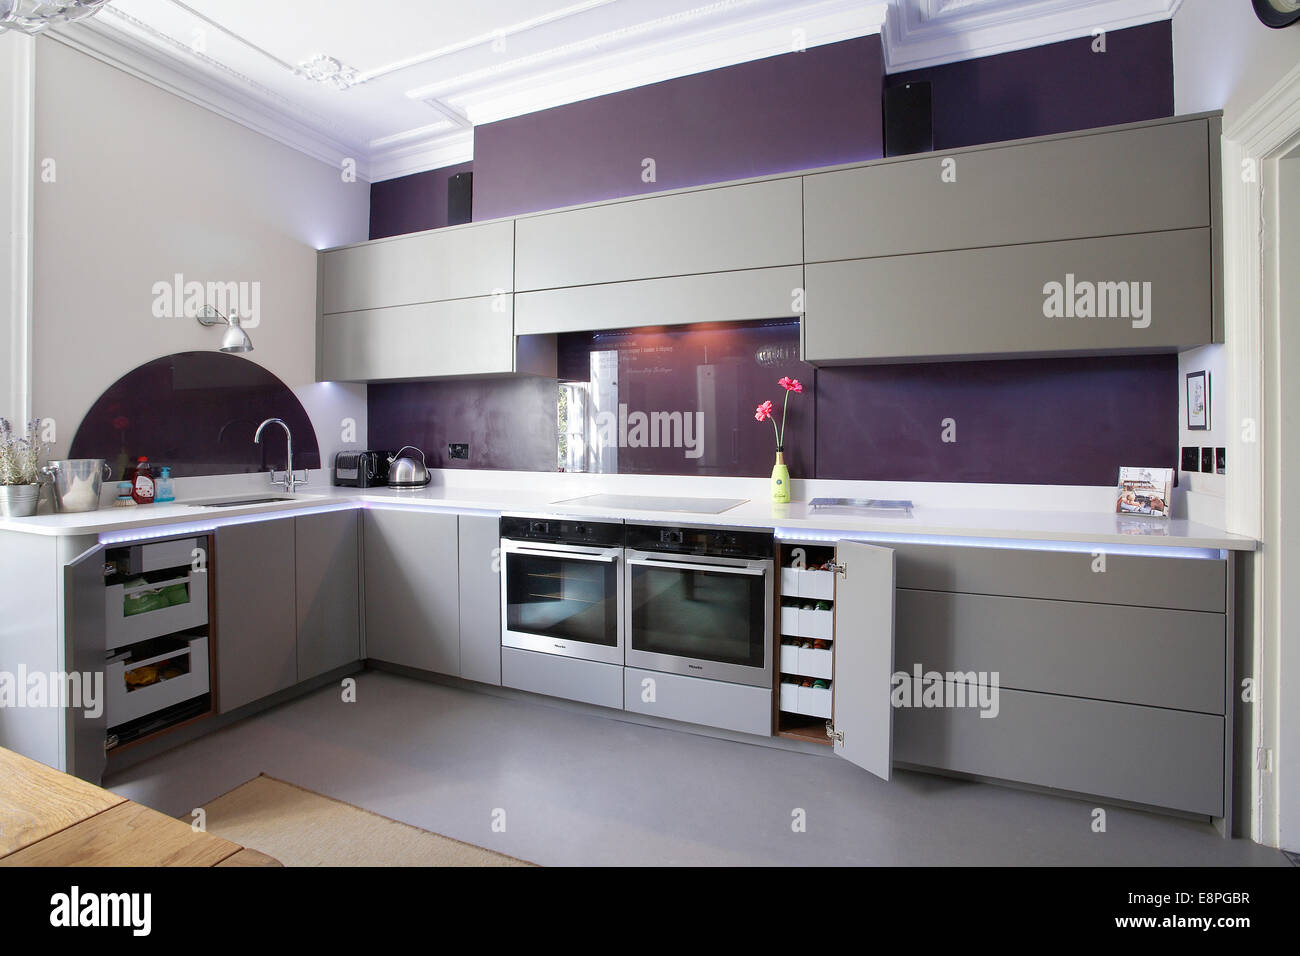 A Modern Kitchen Inside A Home In The Uk With Cupboard Doors Open Stock Photo Alamy